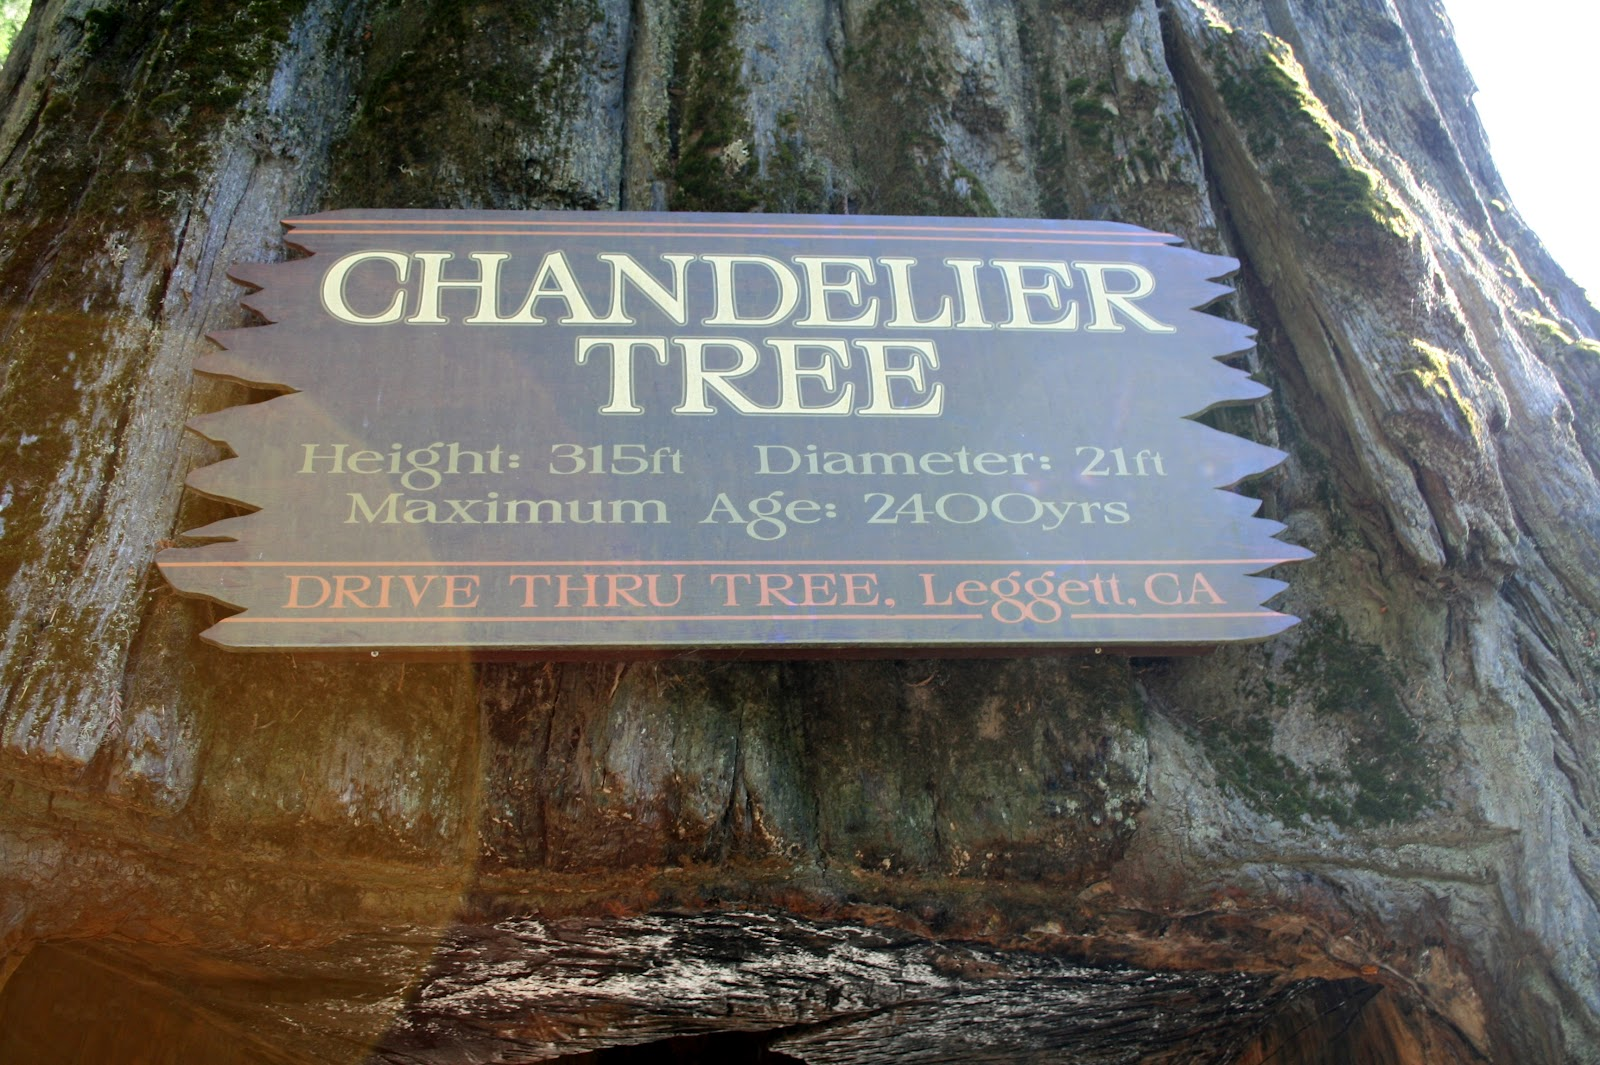 Joe diane mallerys big adventure modern day gypsies the tree is the chandelier tree which is privately owned in leggett ca it is a redwood tree and stands at 315 feet tall and is at least 2400 years old arubaitofo Images